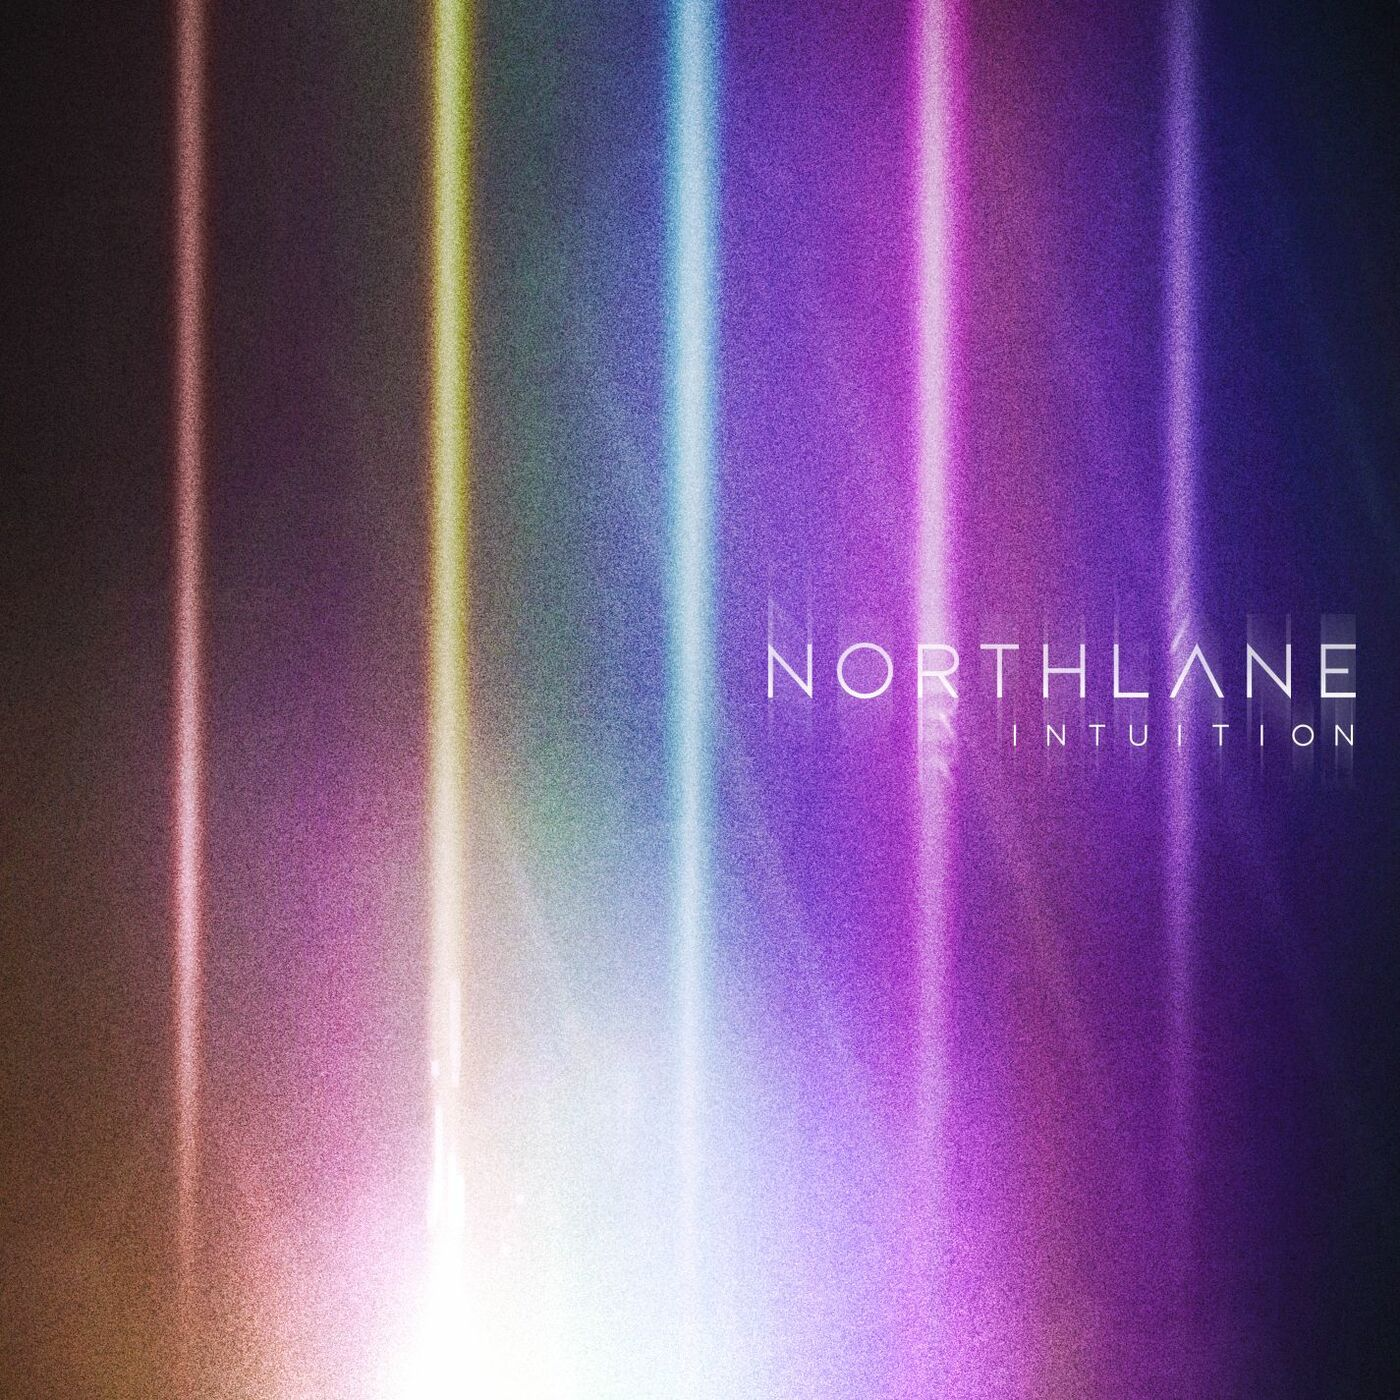 Northlane - Intuition [single] (2017)